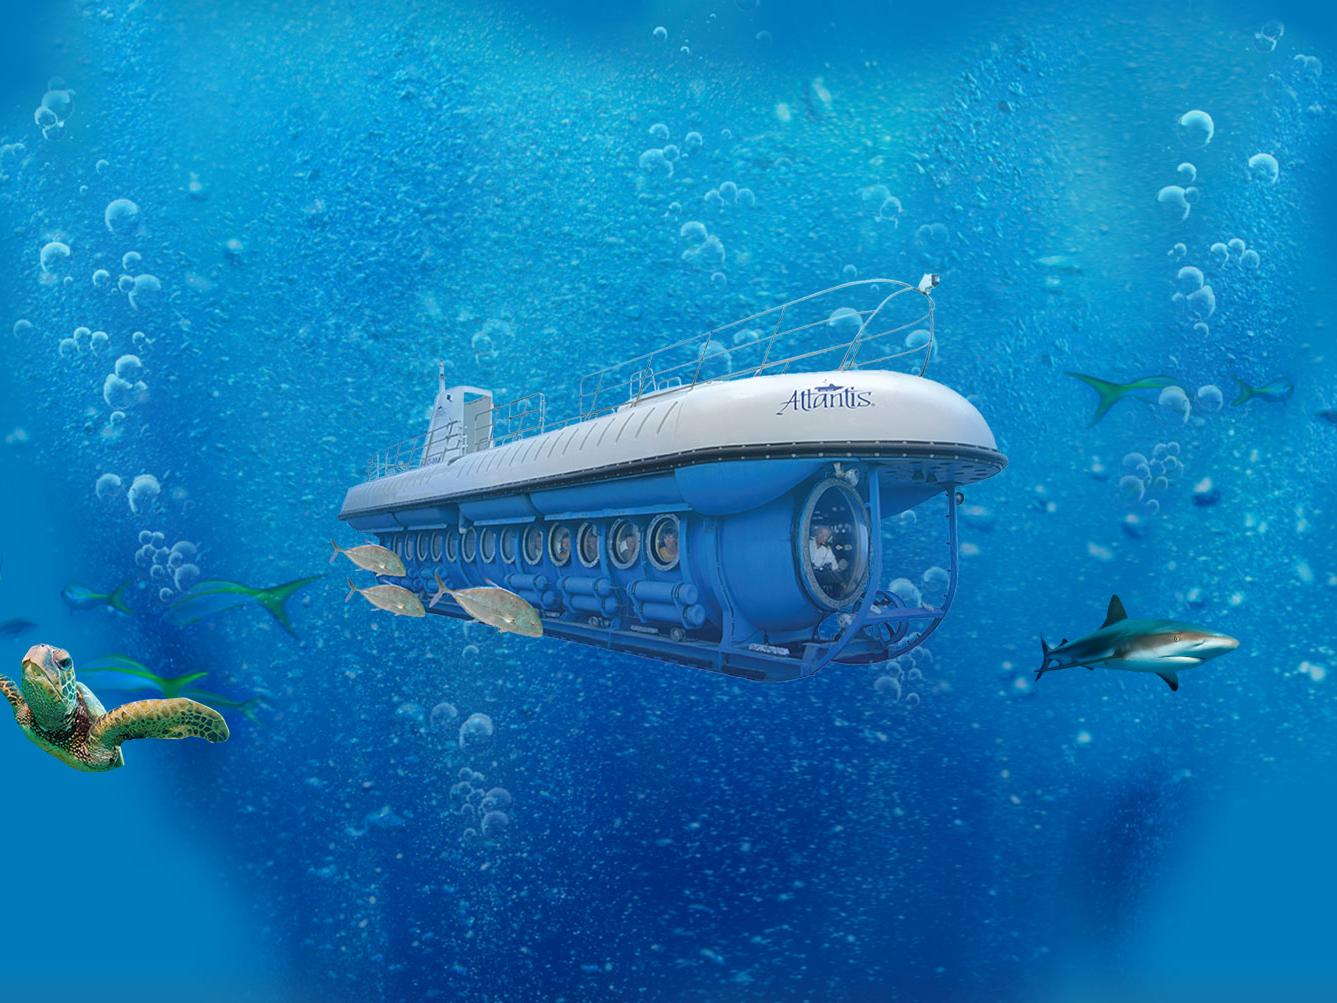 1.5-Hour Atlantis Submarine Tour from Honolulu